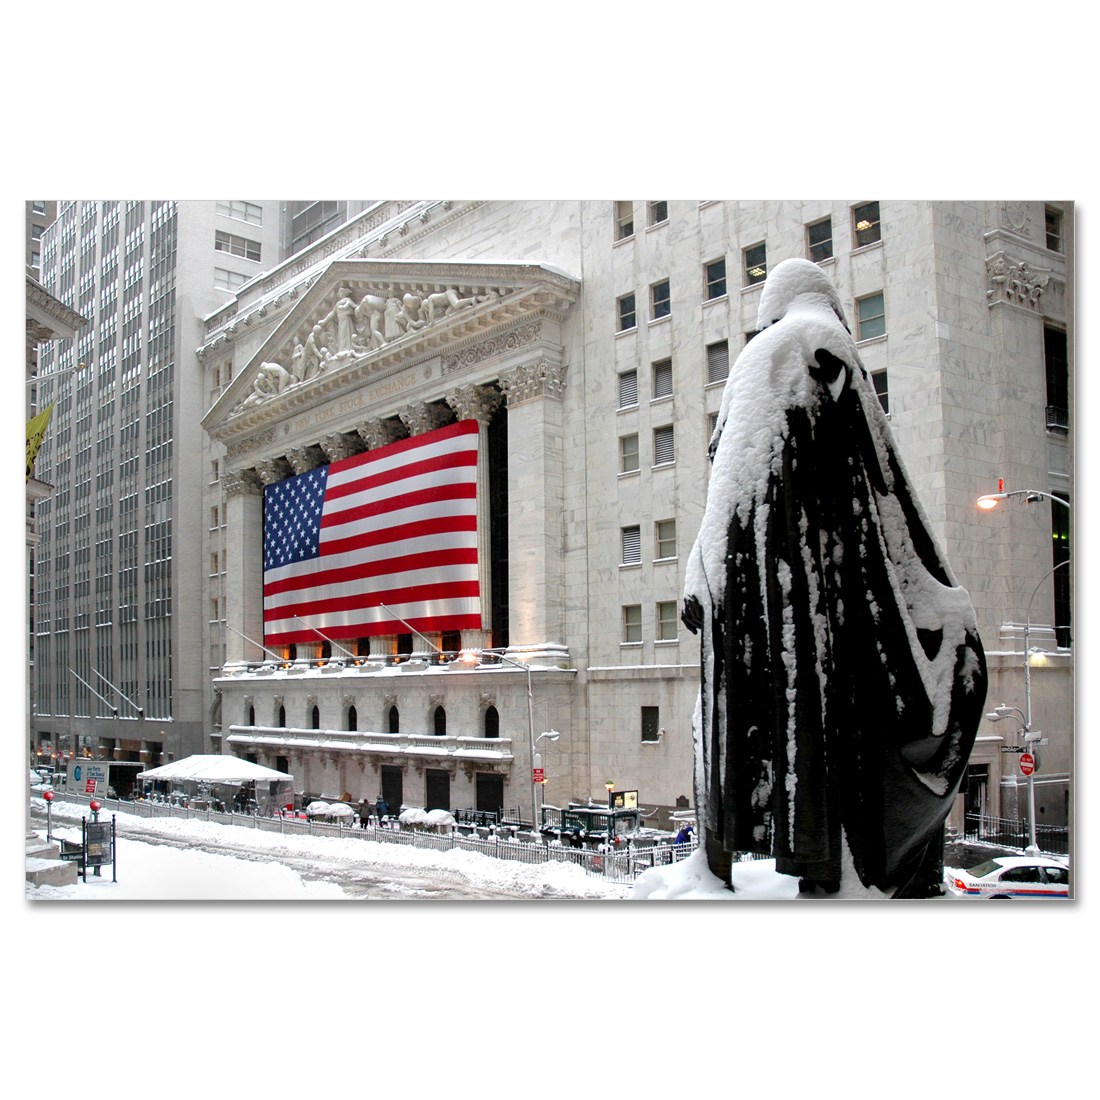 Wall Street Gifts George Washington At Wall Street Winter New York Art Print Mp2116